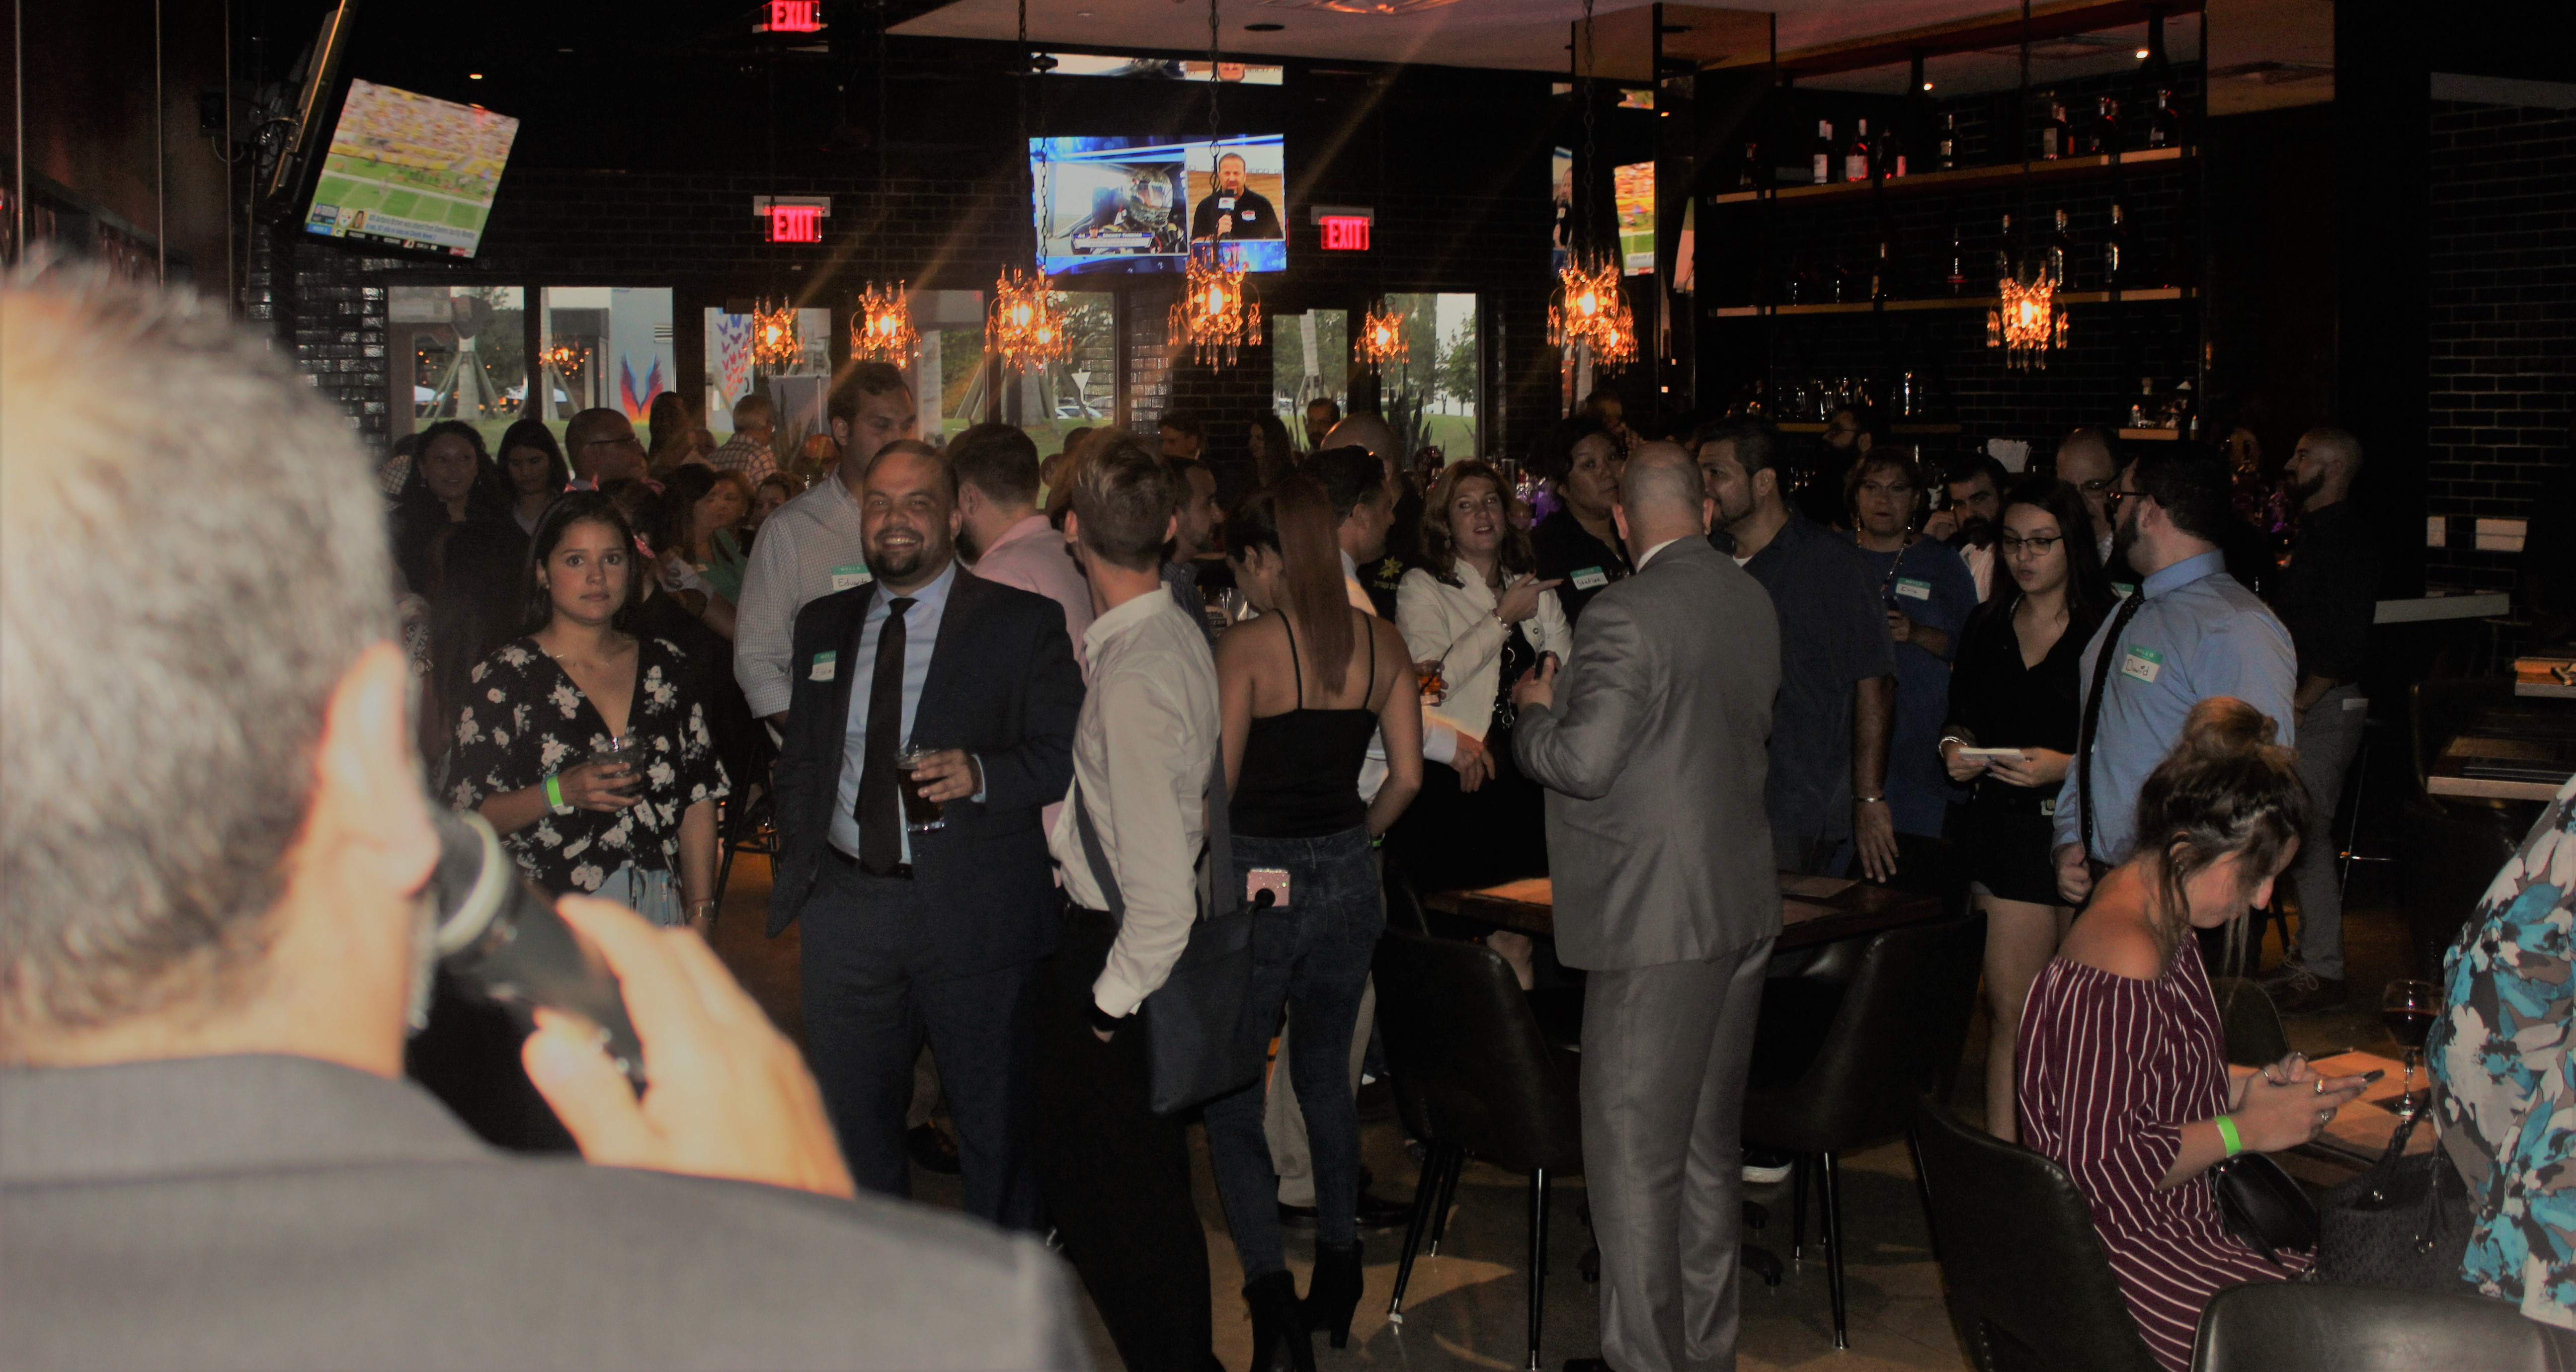 King's Bowl Business networking, people networking towards one another.